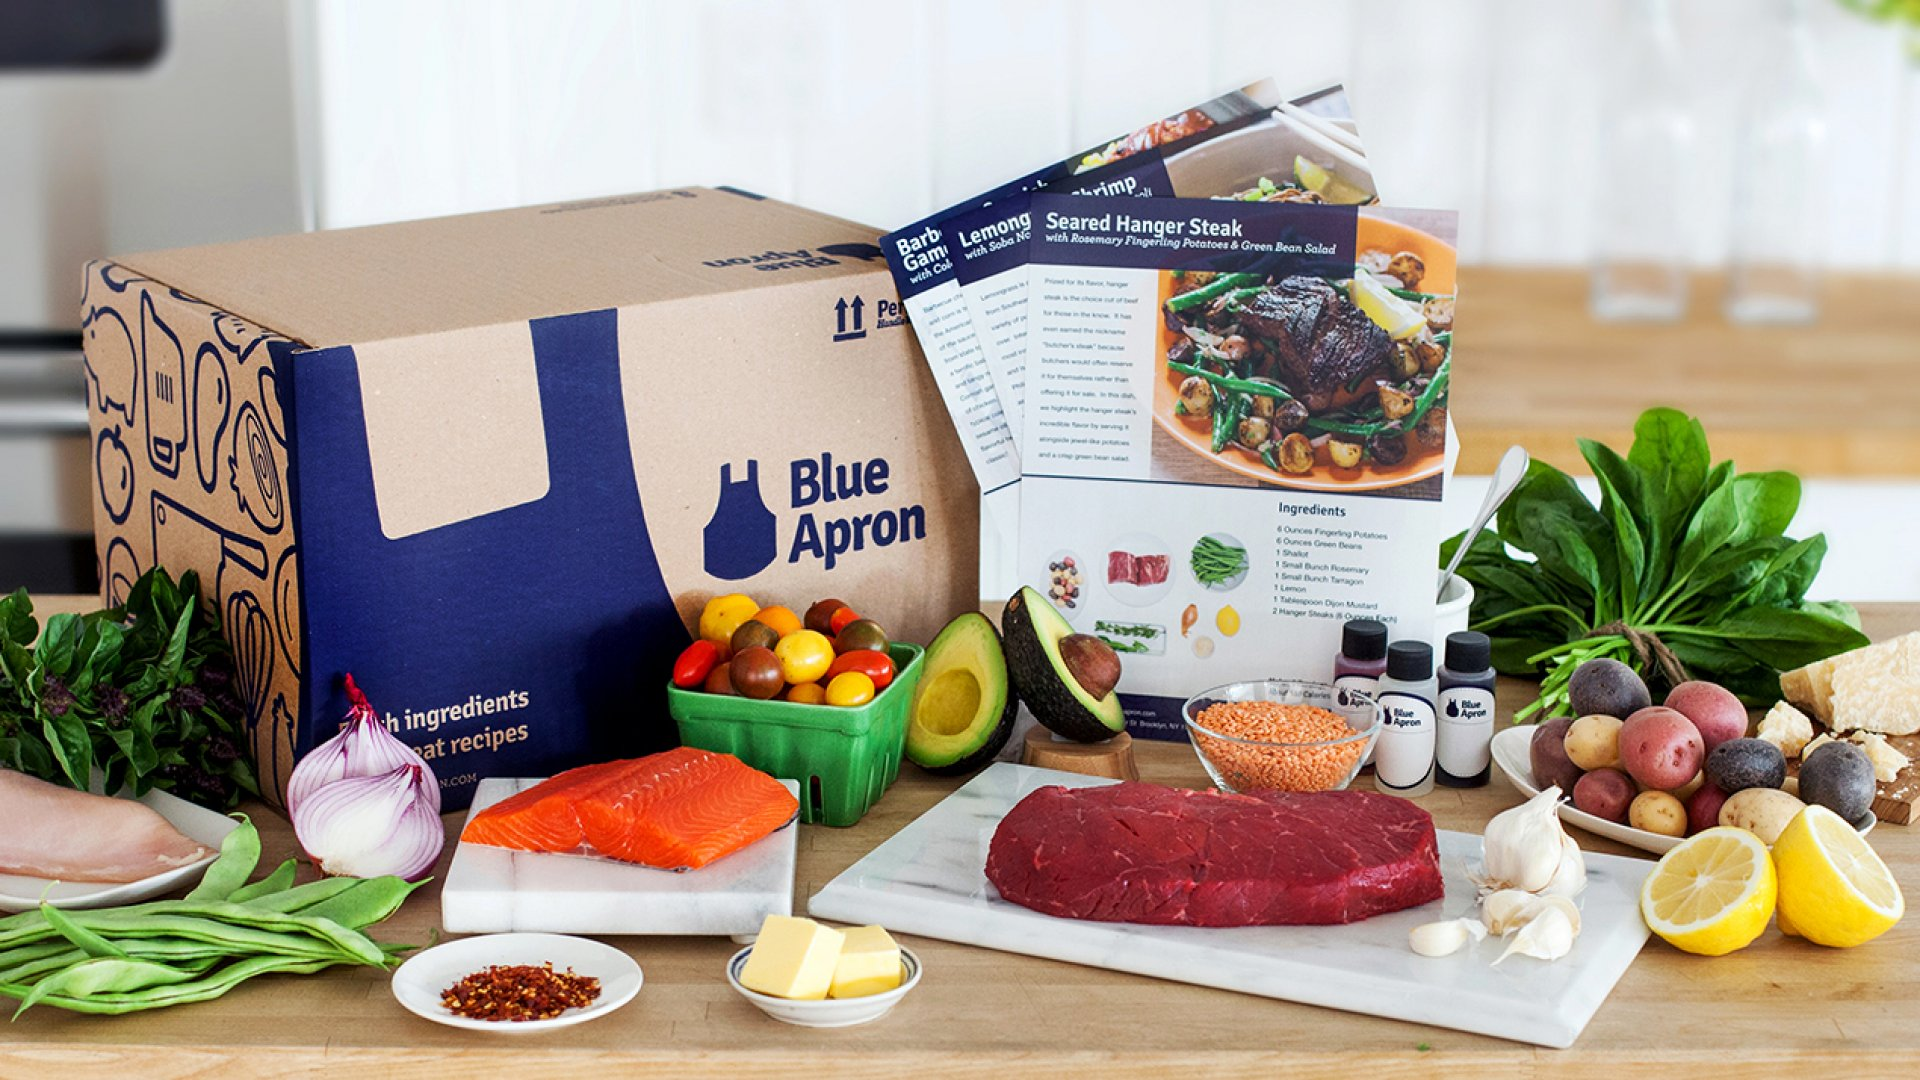 BLUE APRON: $100 Off – Limited Time Flash Sale . Recipe Plans With A Wide Range Of Wholesome Dishes. Find Your Meal Kit!